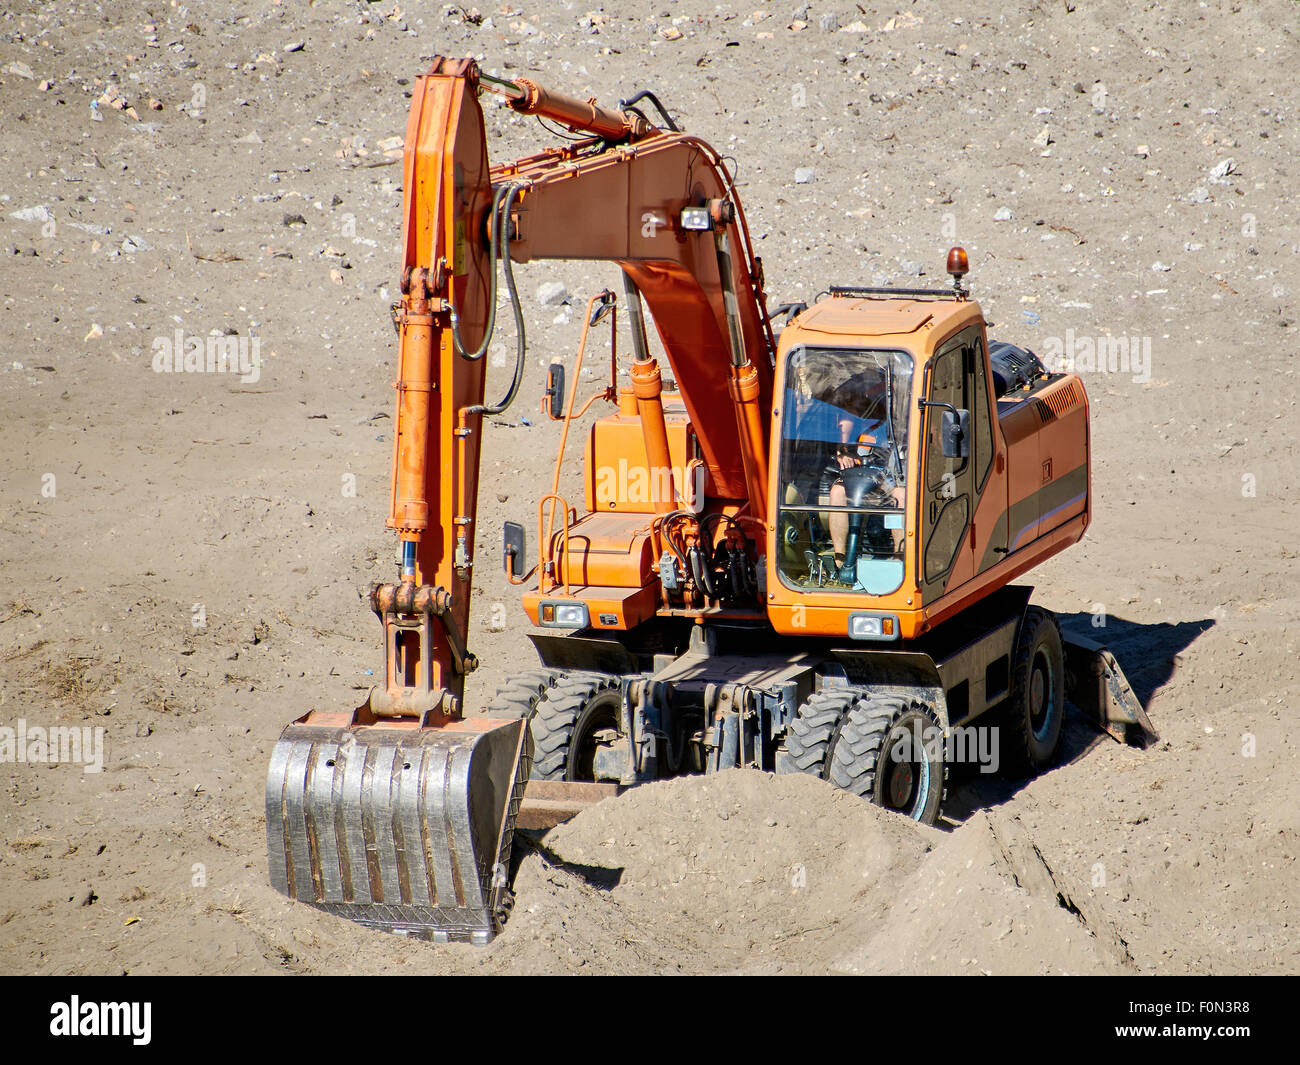 Excavator bulldozer mover in action - Stock Image